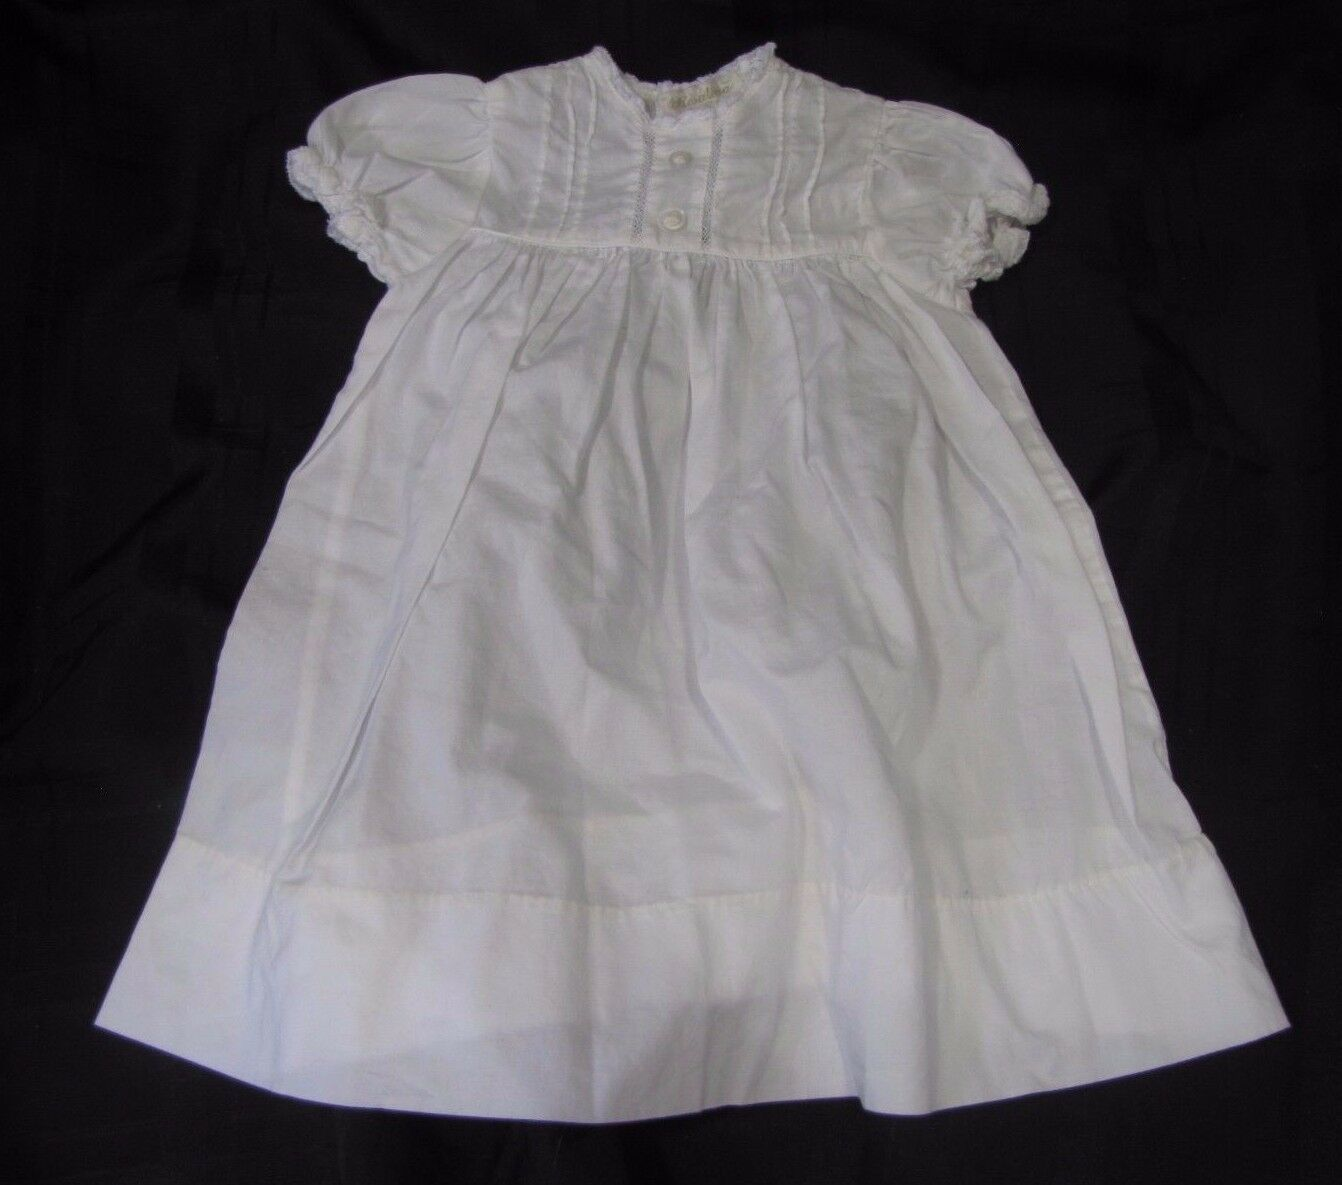 Primary image for ROSALINA LIGHTWEIGHT BABY INFANT GIRL WHITE COTTON DRESS 0-3 EUC